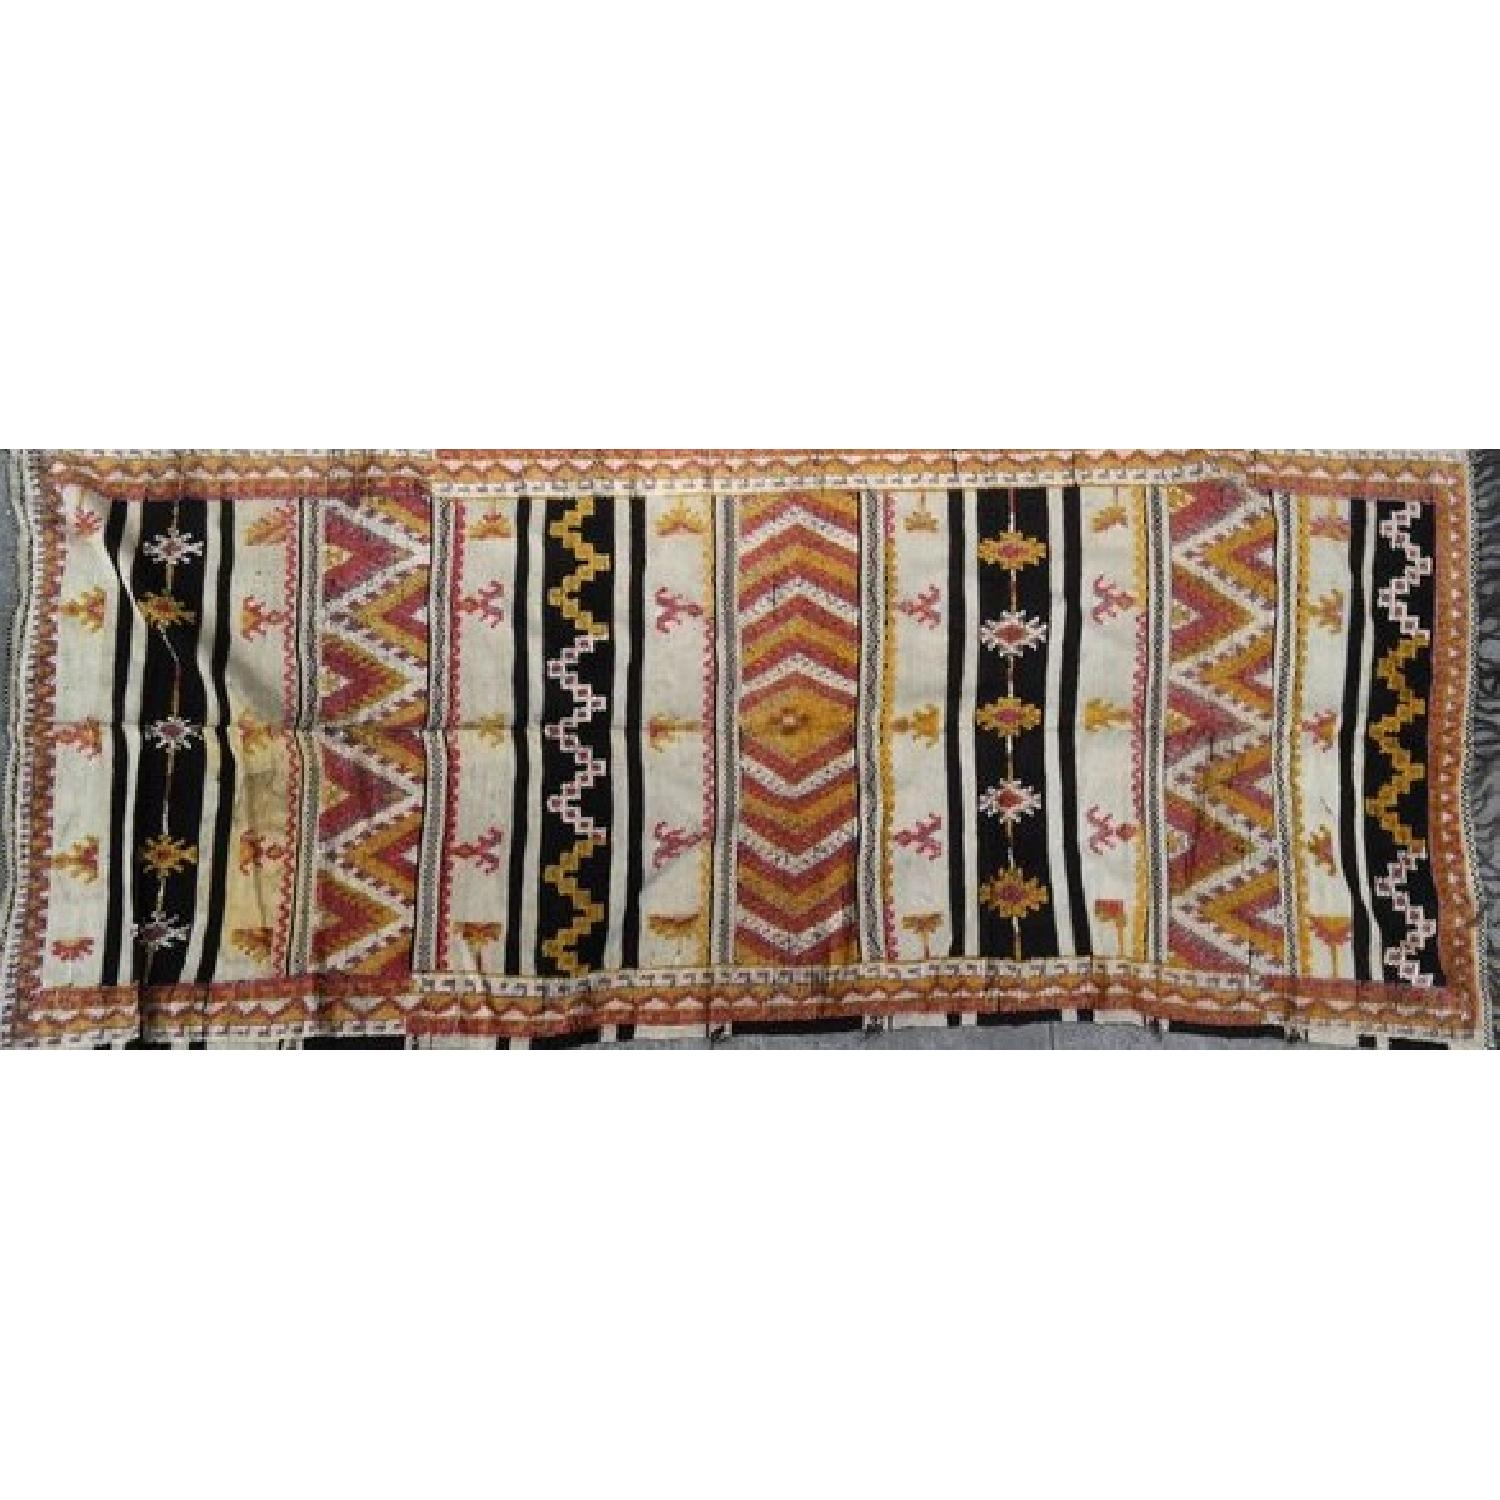 Mid century vintage handwoven morcocan rug kilim aptdeco for Decor international handwoven rugs